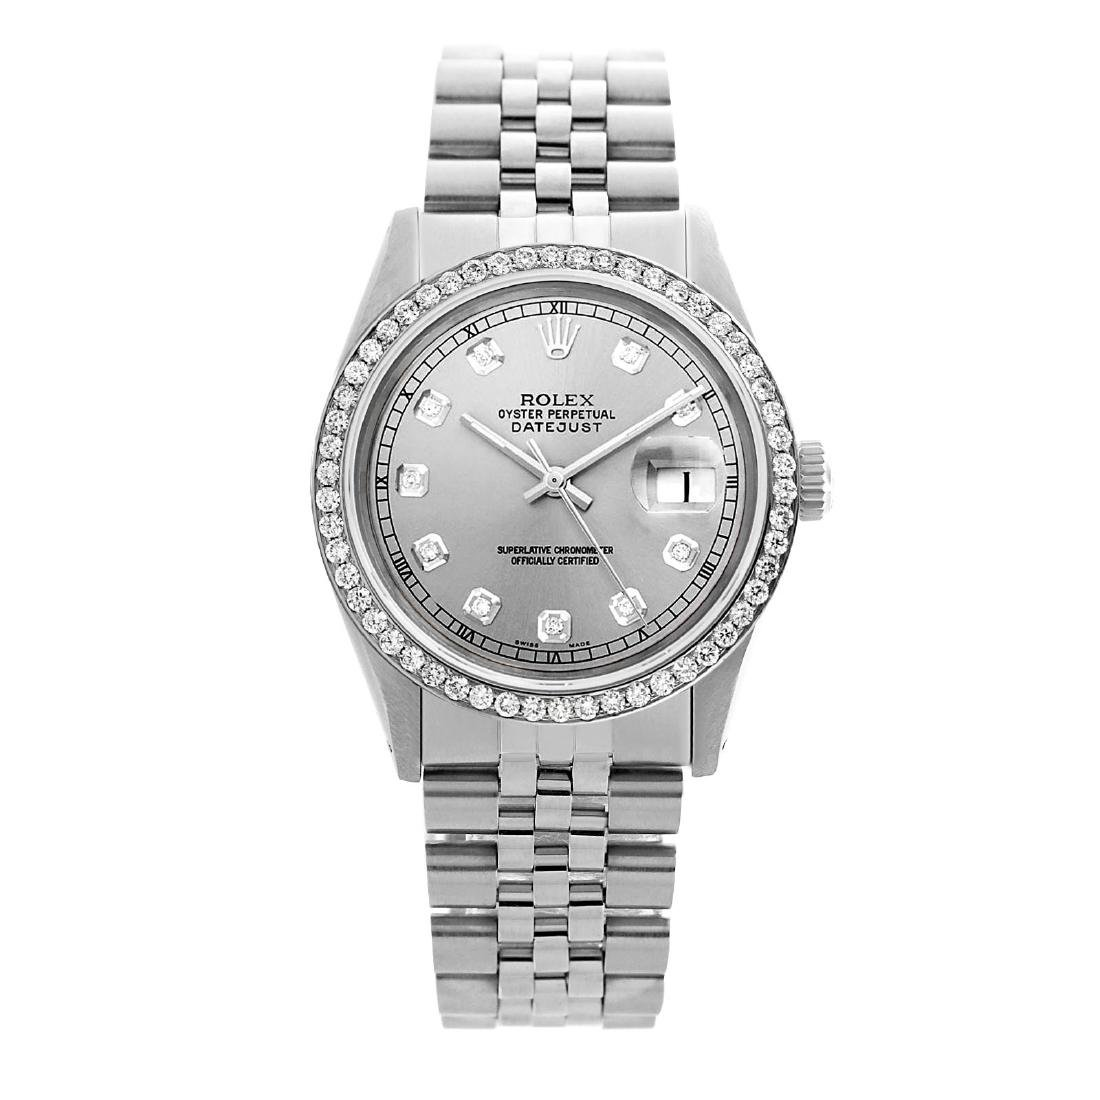 Rolex Men's Stainless Steel, QuickSet, Diamond Dial & - 2